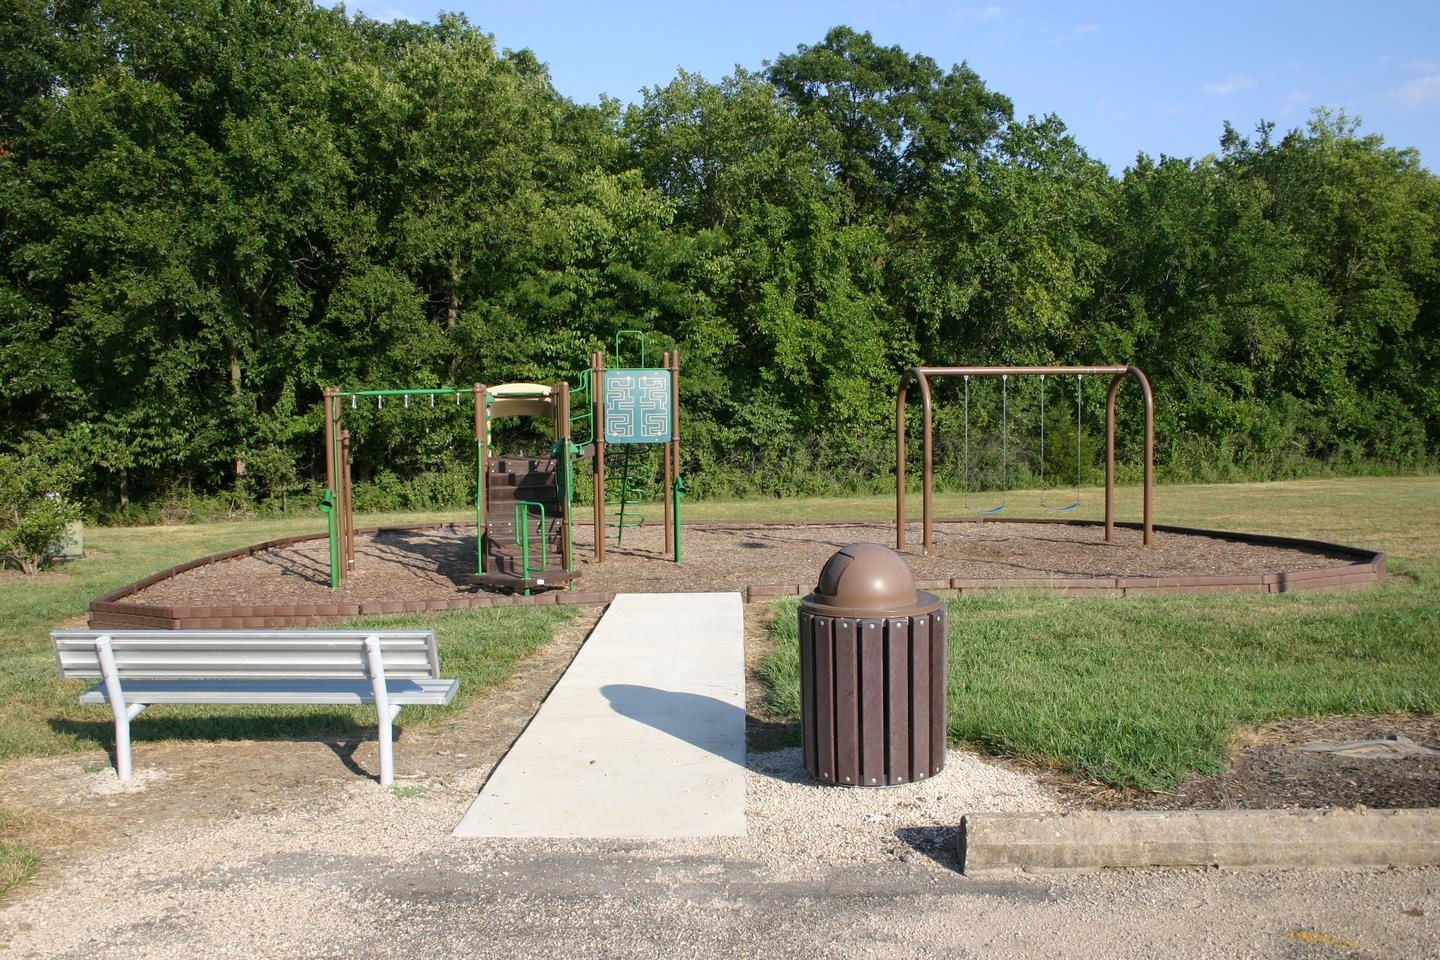 Bloomington West Park Campground playgroundA modern playground is located within the Bloomington West campground